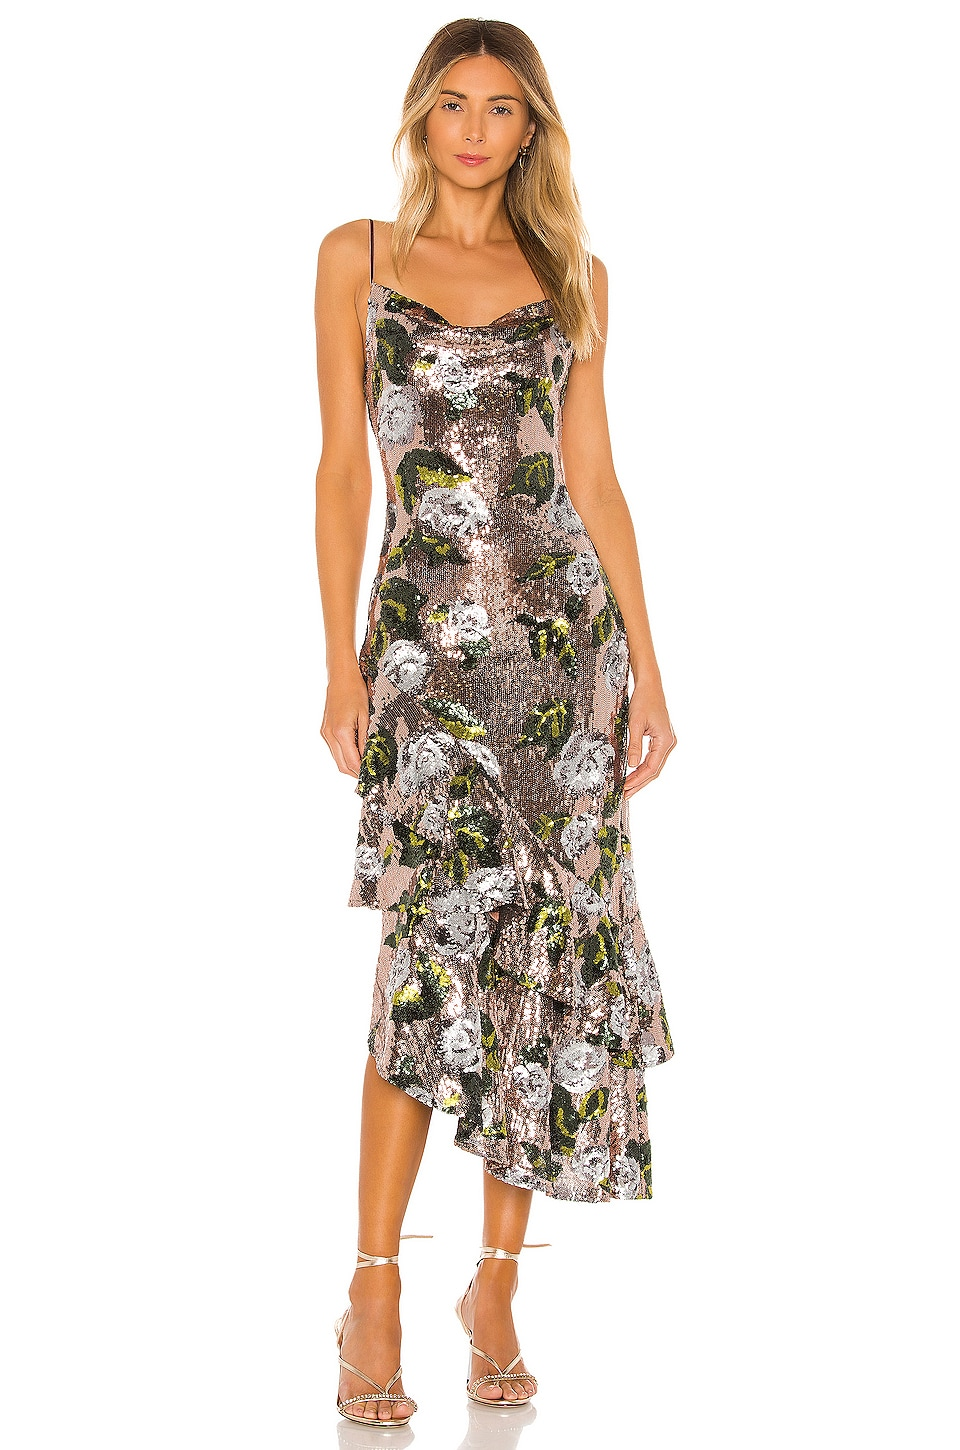 House of Harlow 1960 x REVOLVE Nicoleta Dress in Rose Gold Floral